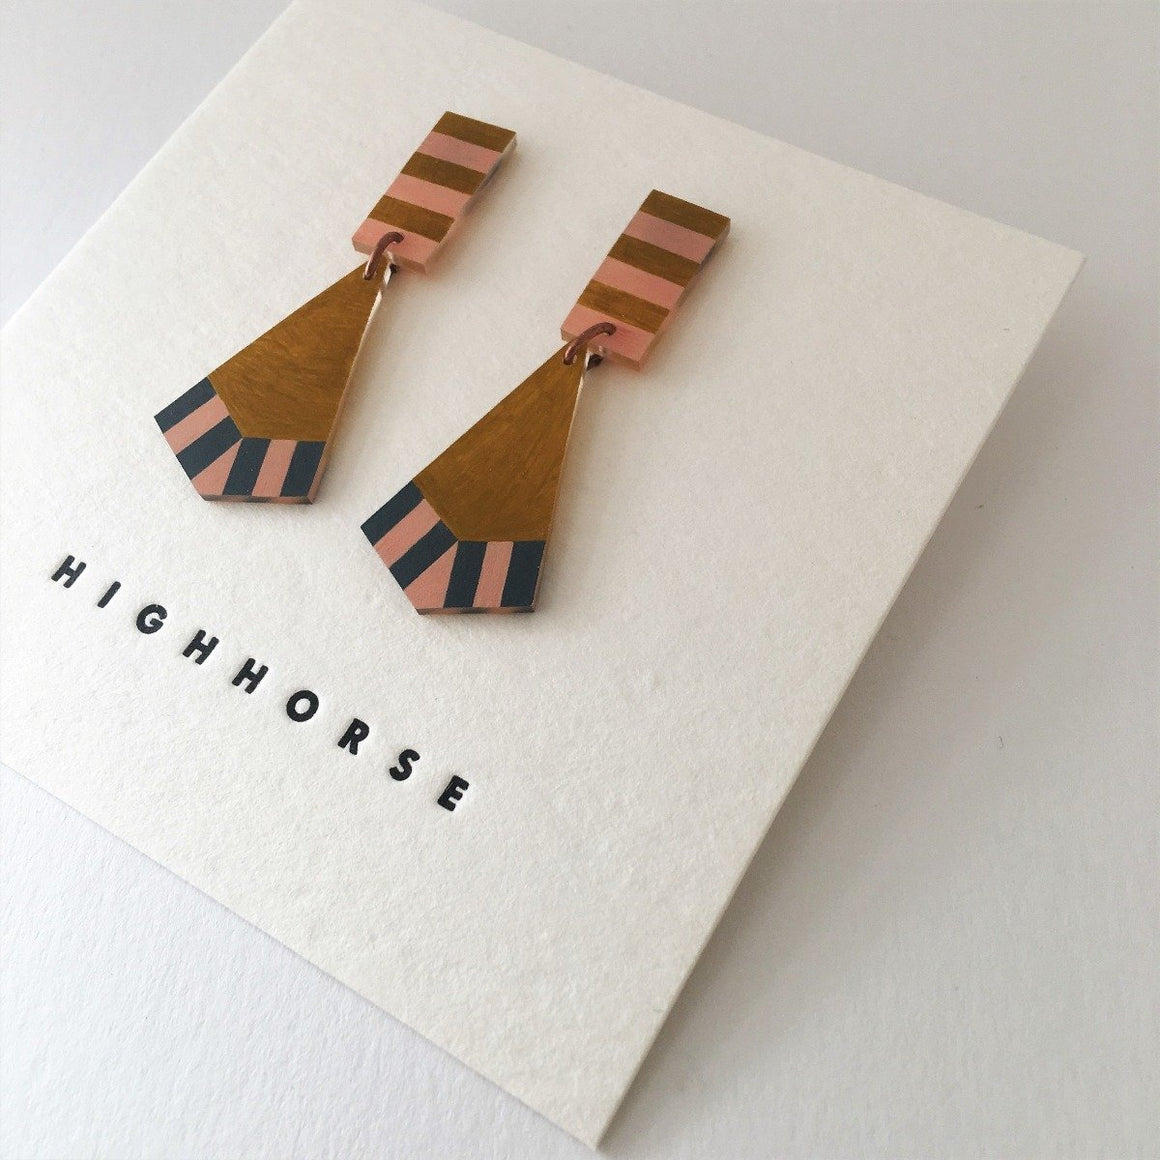 Earrings two featuring a fishtail shape including the colours gold, pink and blue